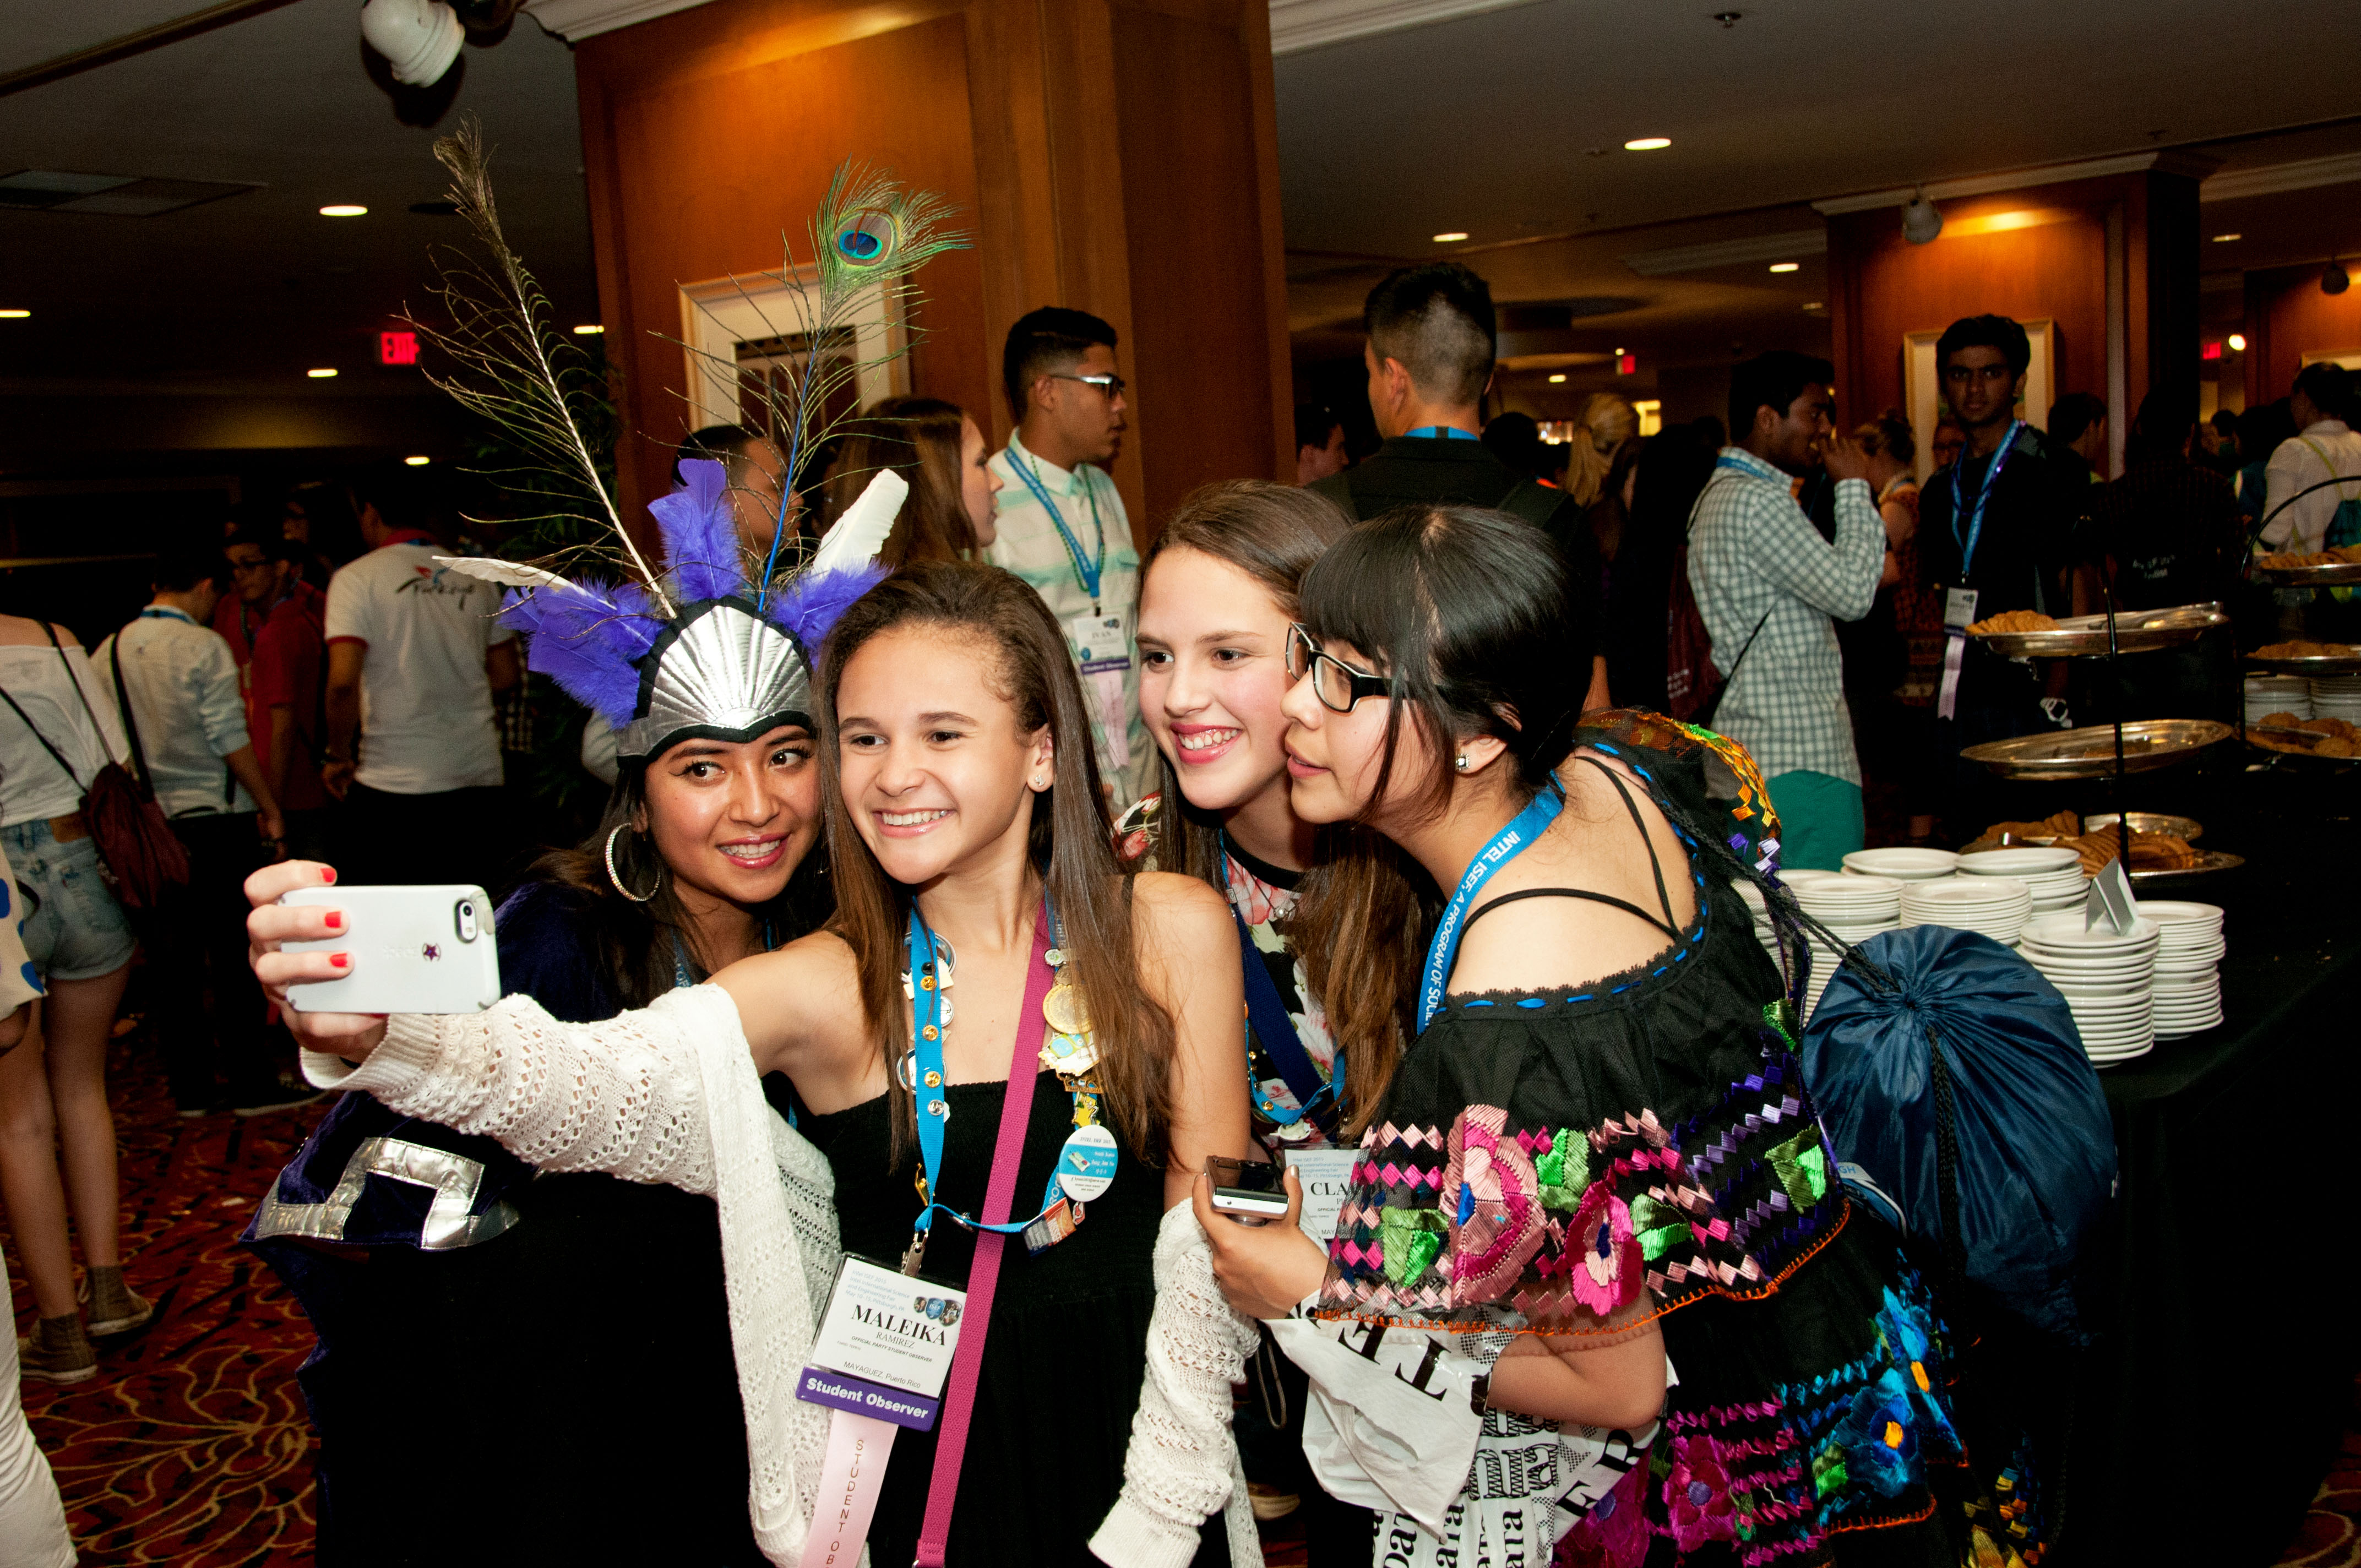 Intel ISEF 2015 finalists gather at the Student Pin Exchange.